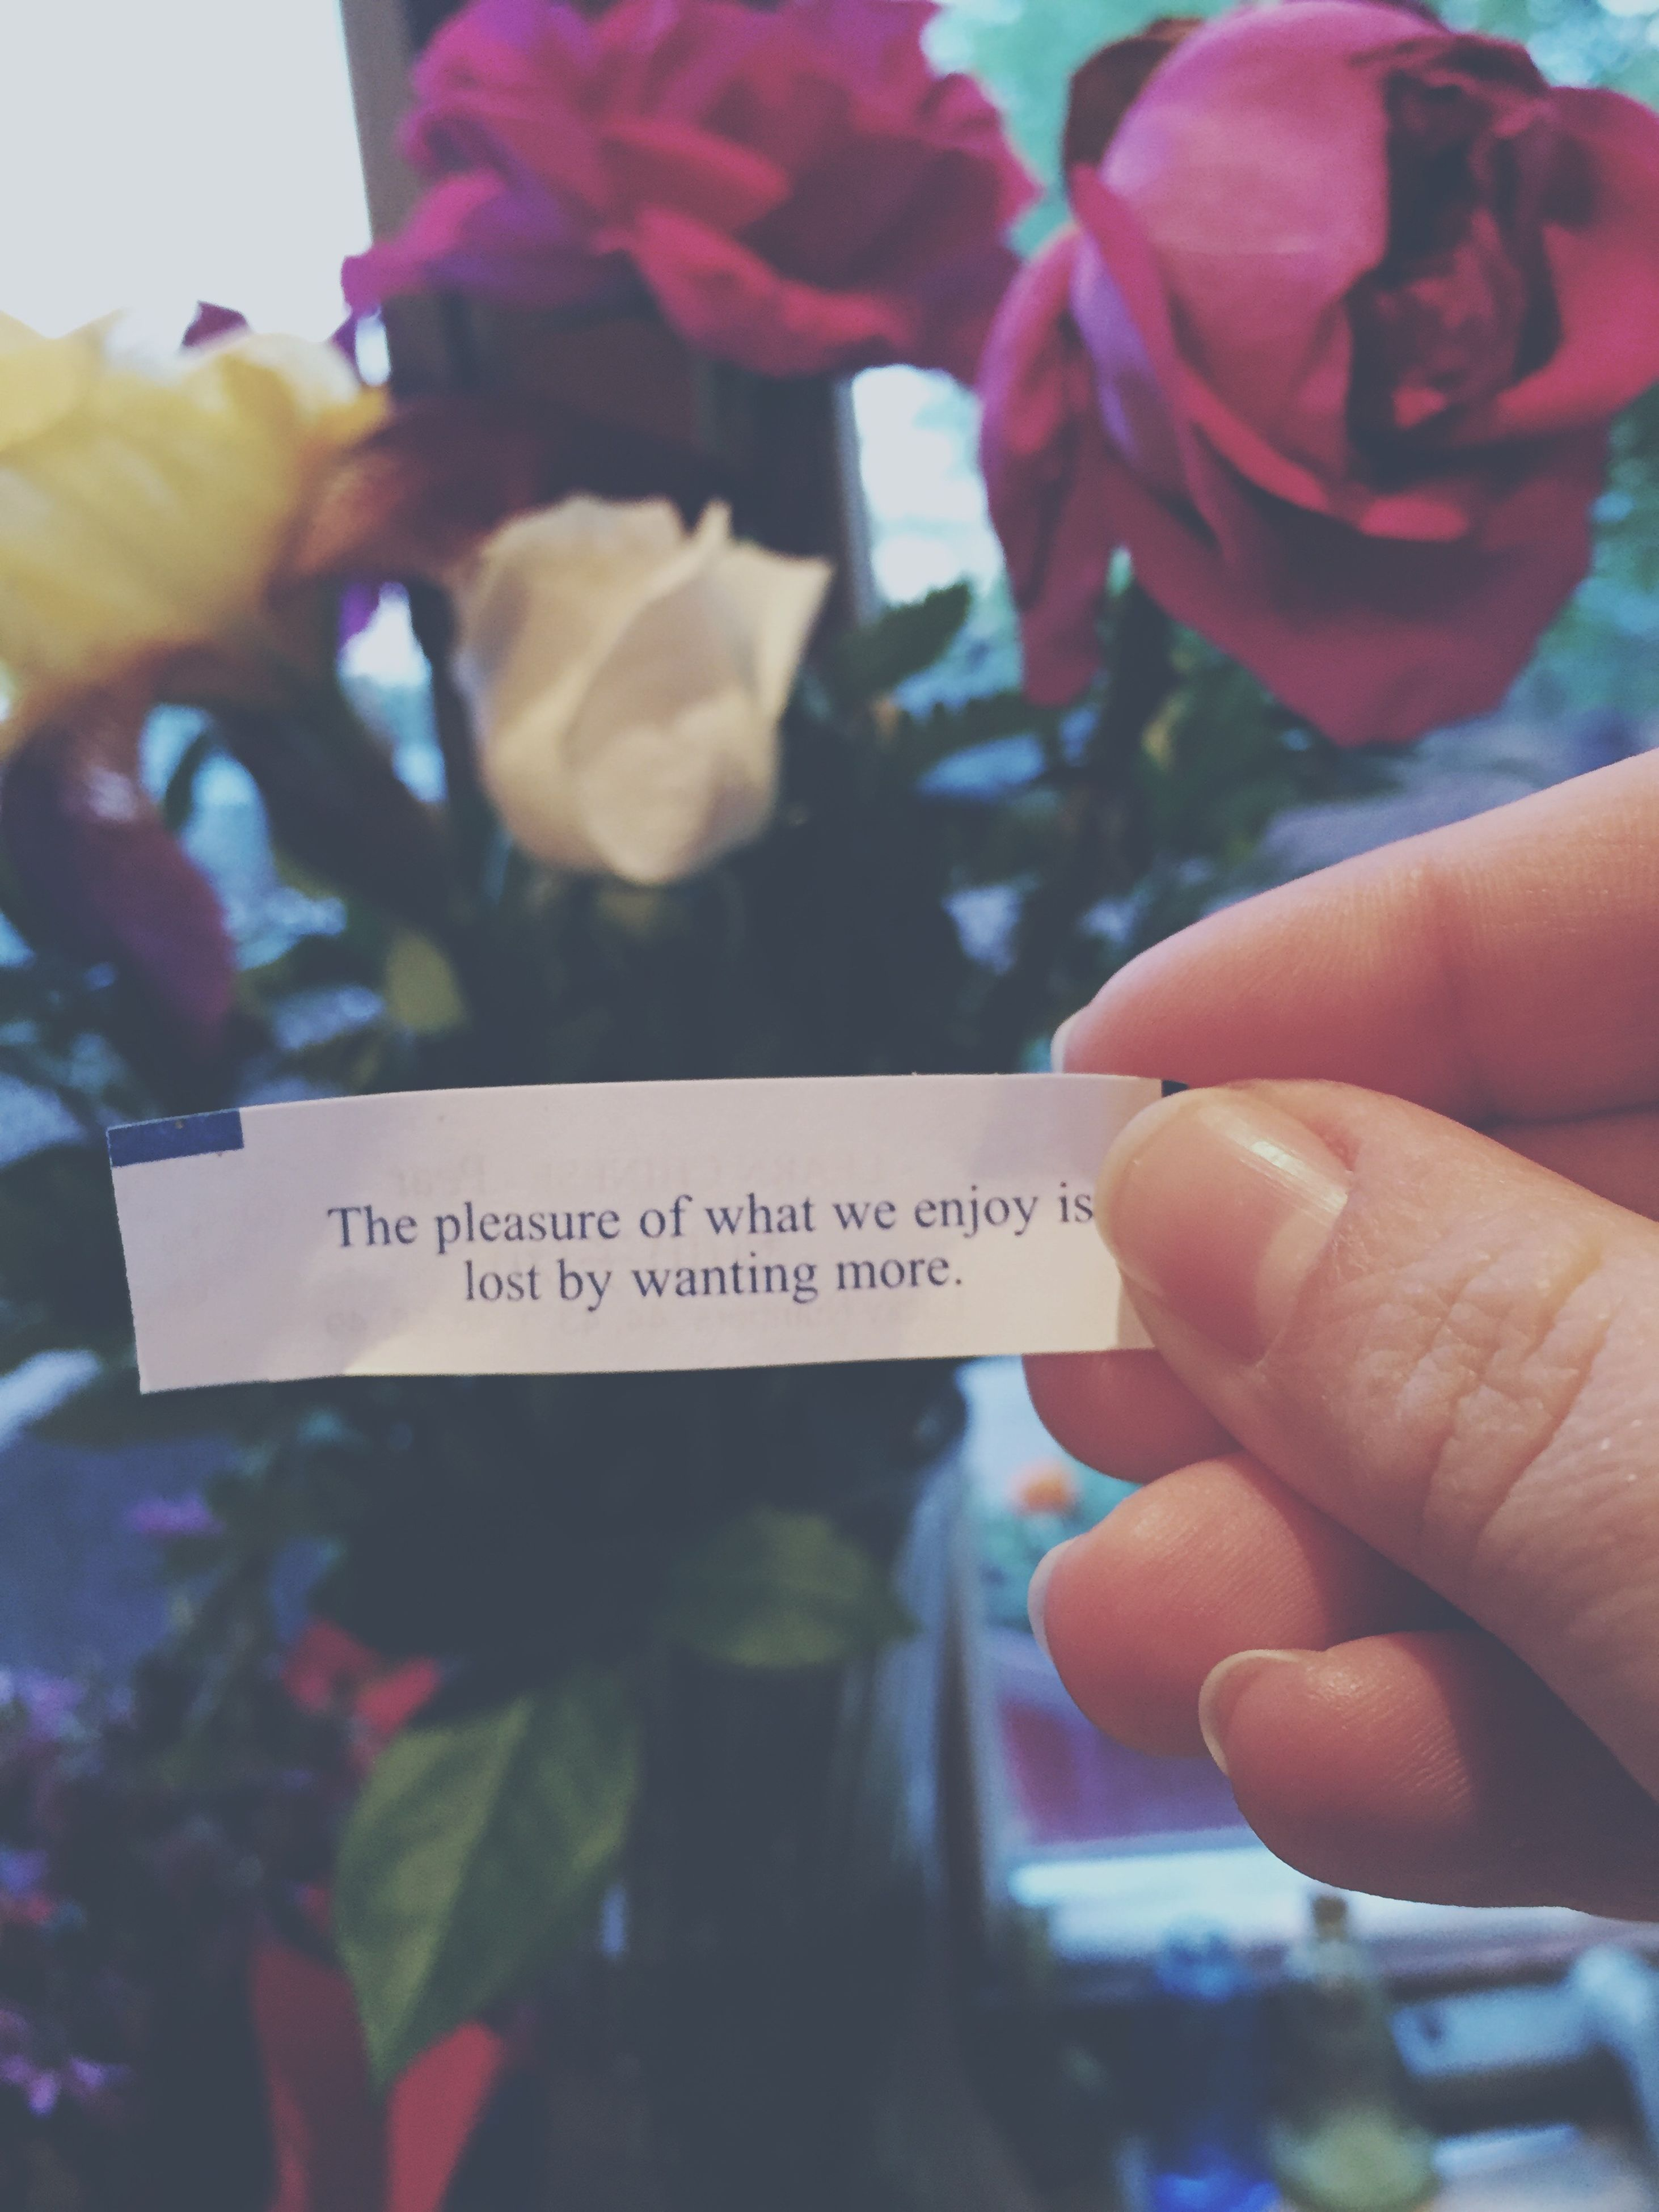 person, holding, part of, cropped, human finger, text, communication, close-up, focus on foreground, flower, western script, indoors, paper, freshness, unrecognizable person, lifestyles, book